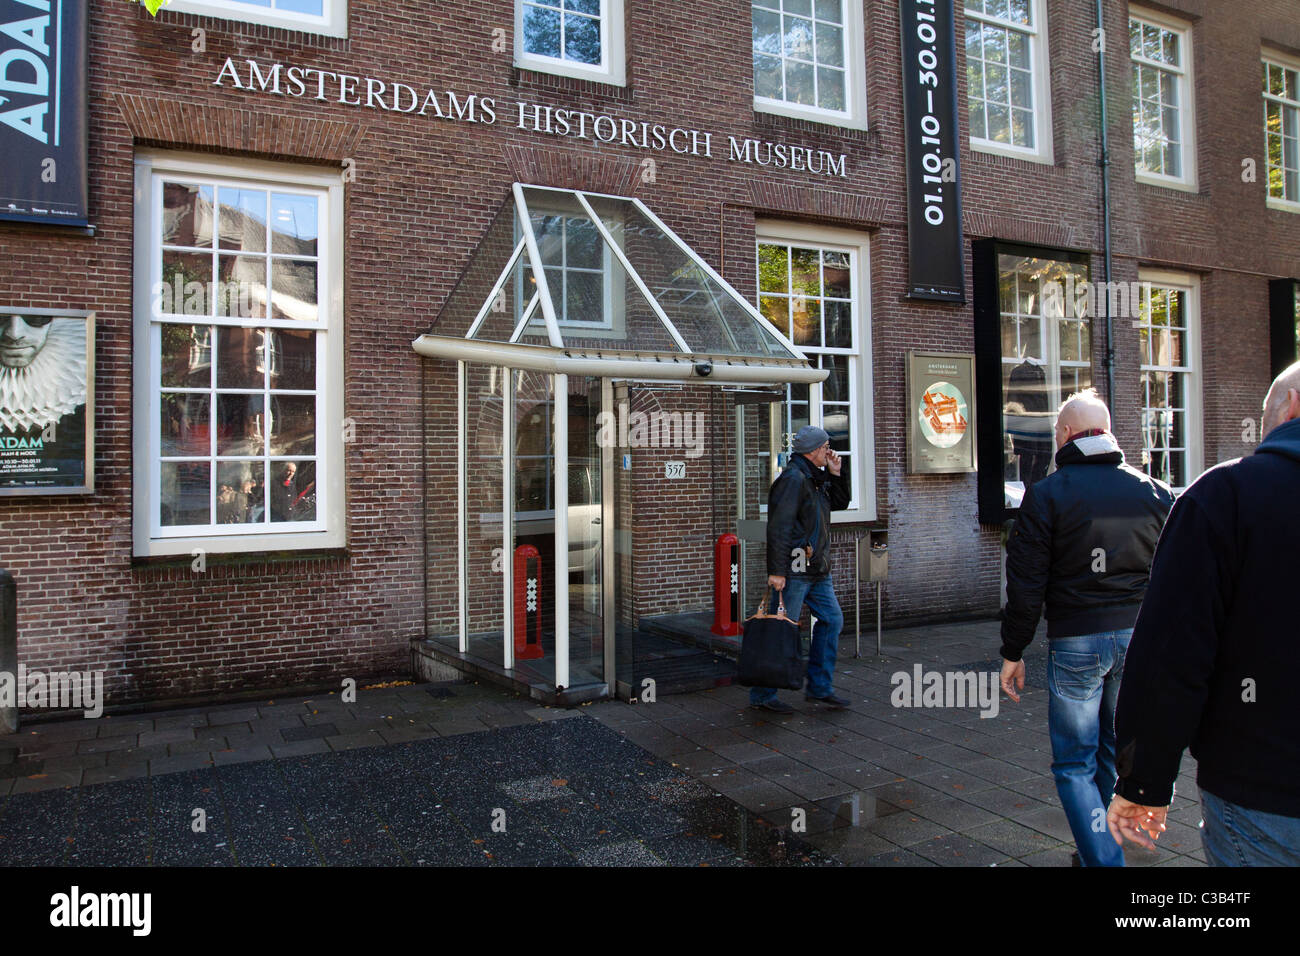 Historical Museum, Amsterdam - Stock Image